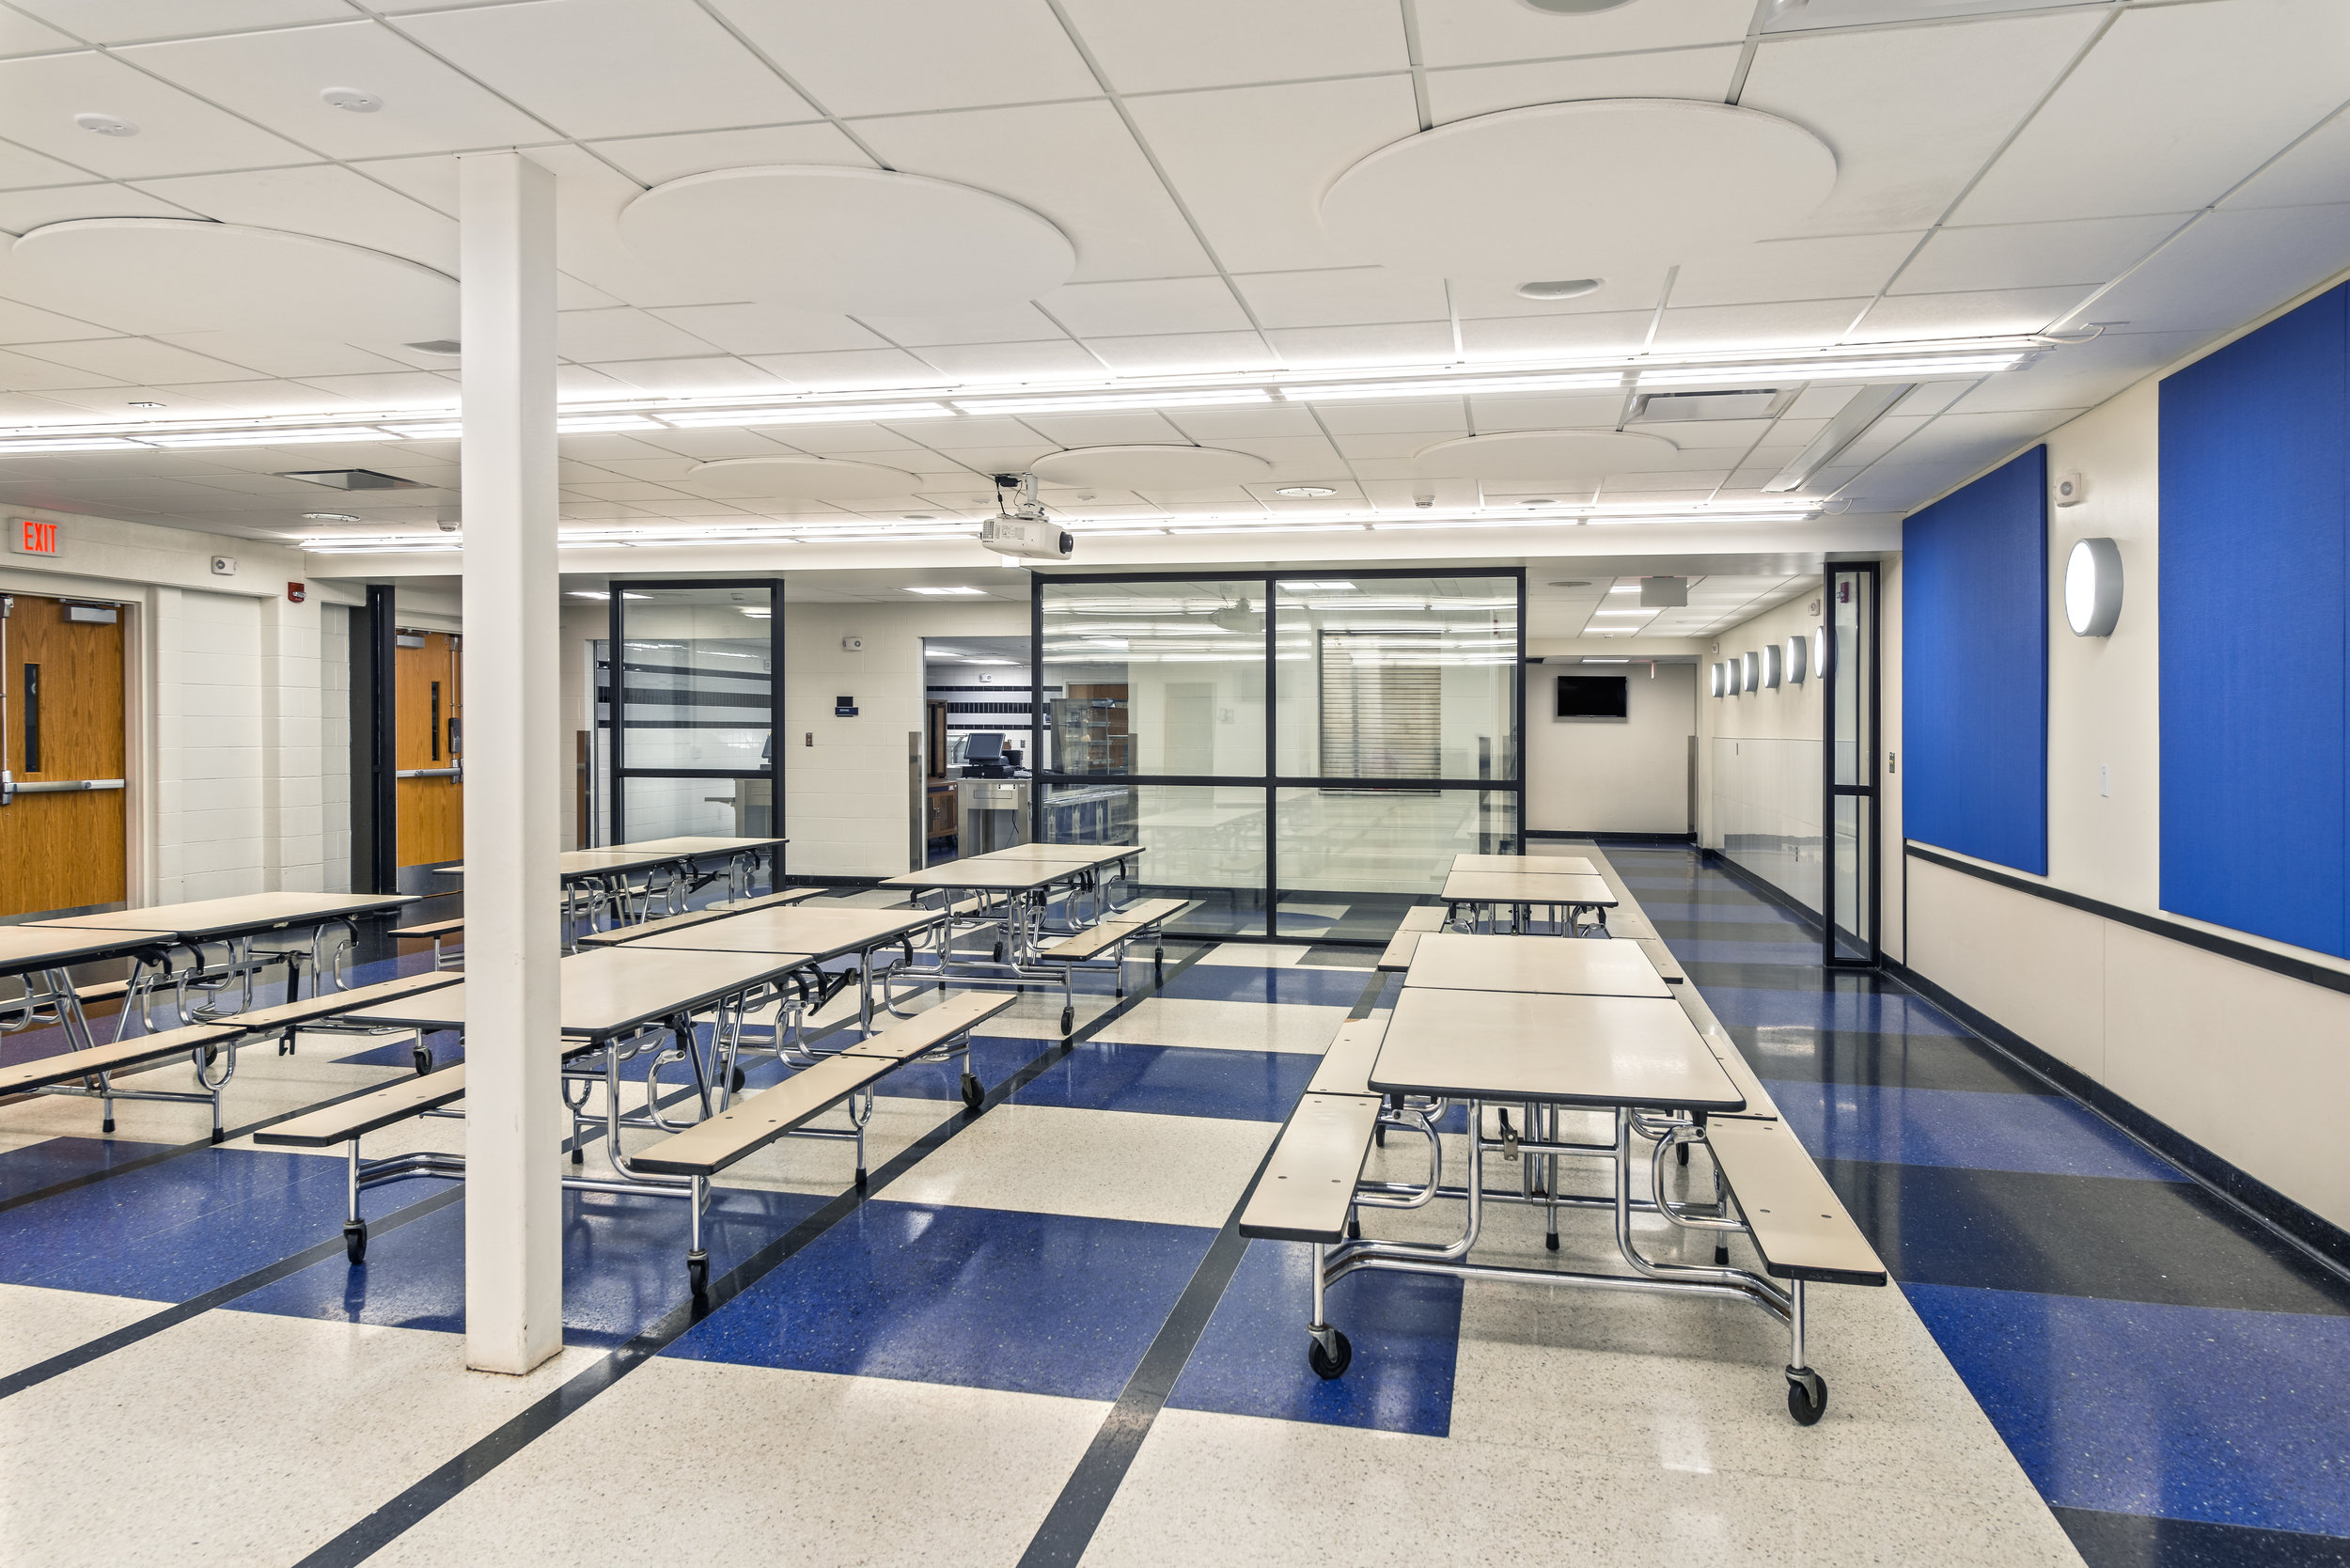 Elementary Cafeteria.jpg